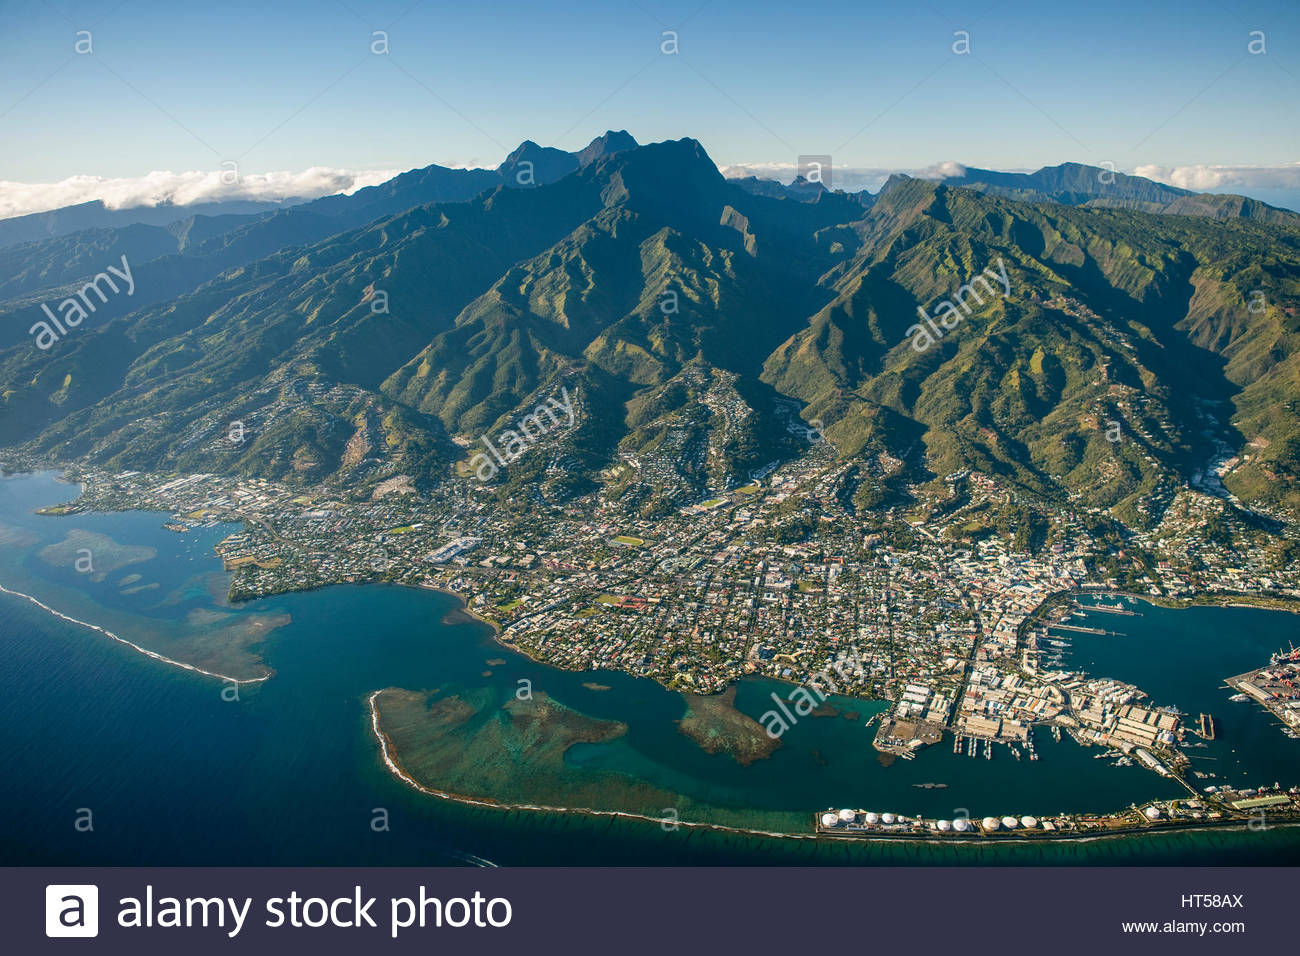 Tropical Islands of French Polynesia. Capital City Papeete on Tahiti - Stock Image